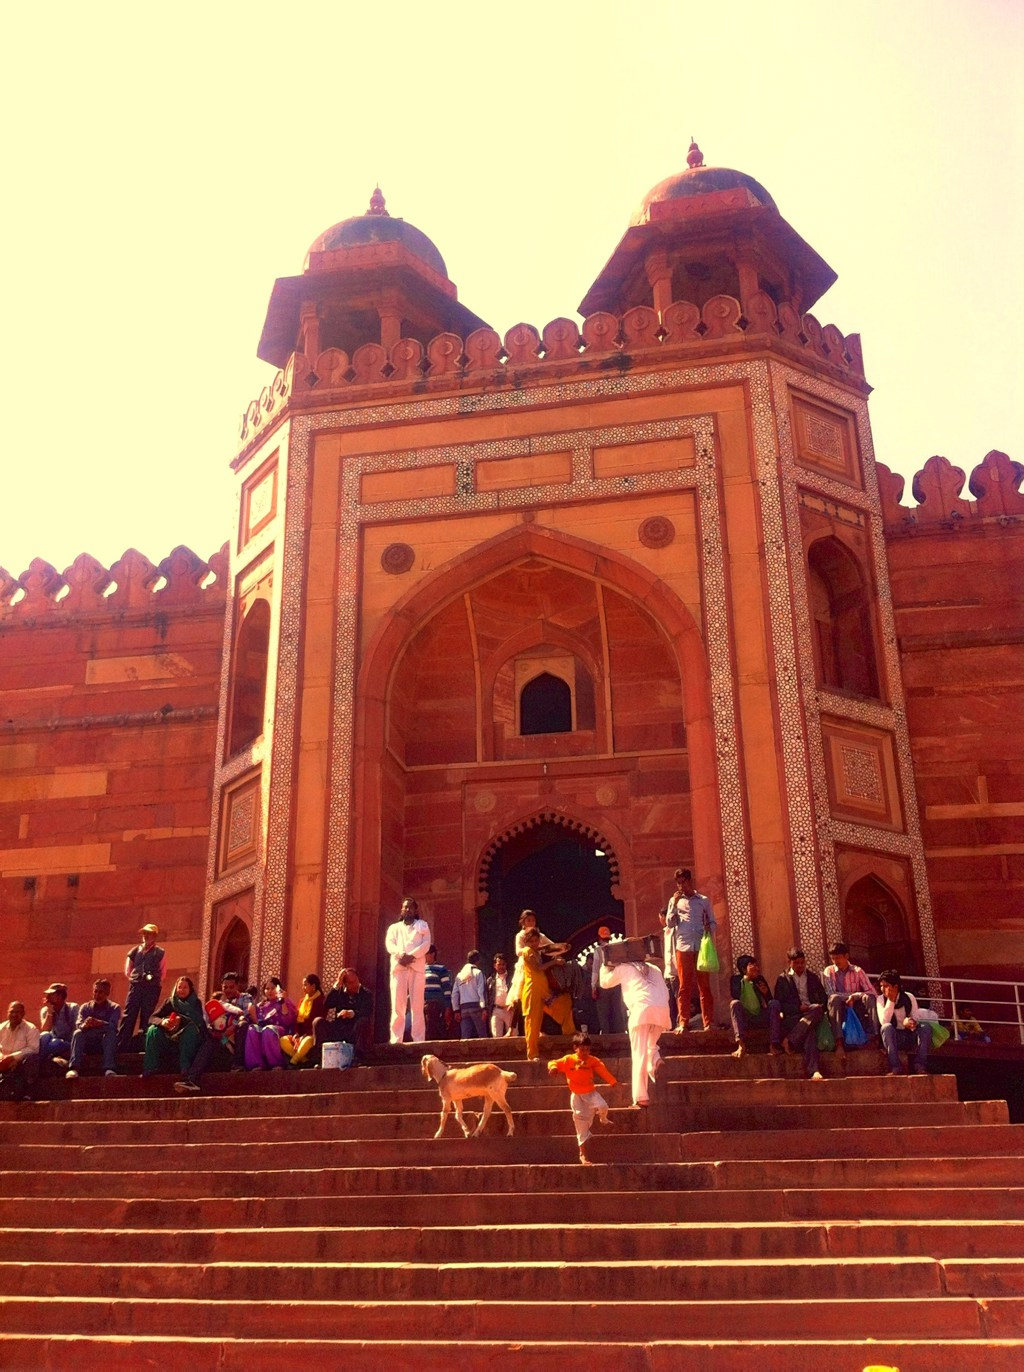 Just one little part of Fatehpur Sikri